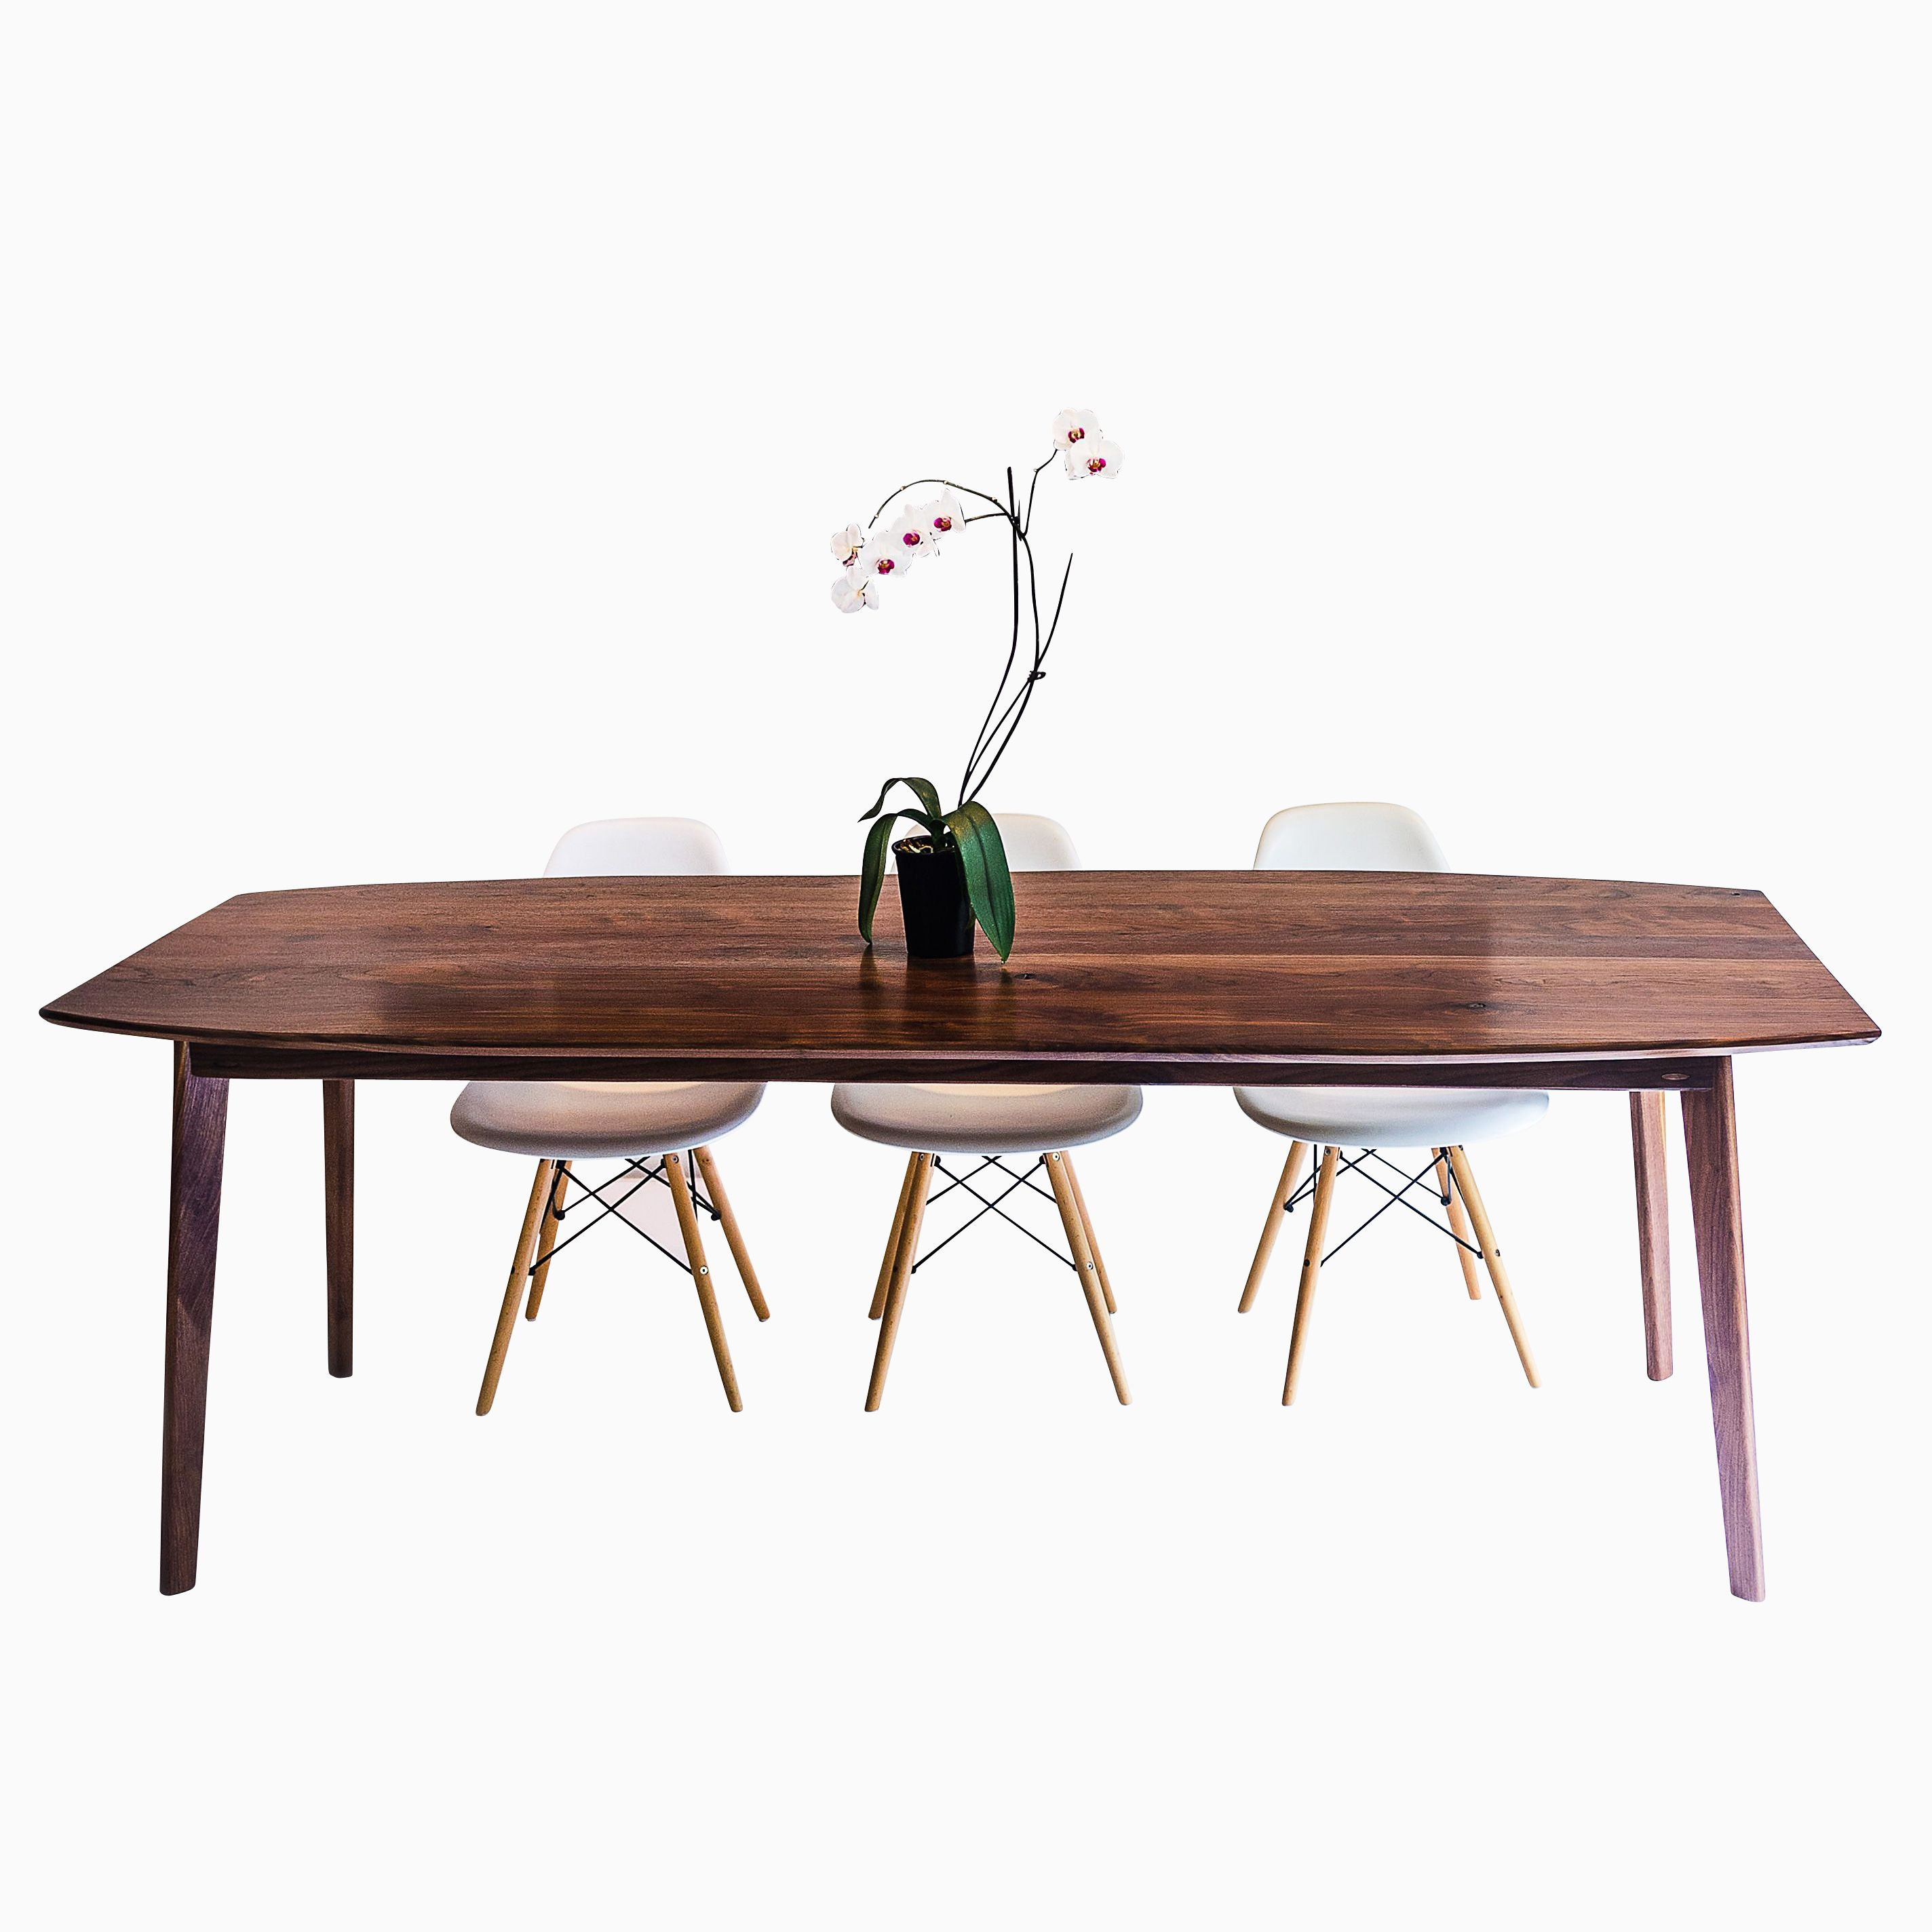 Custom Made The Santa Monica Solid Black Walnut Dining Table Mid Century Modern